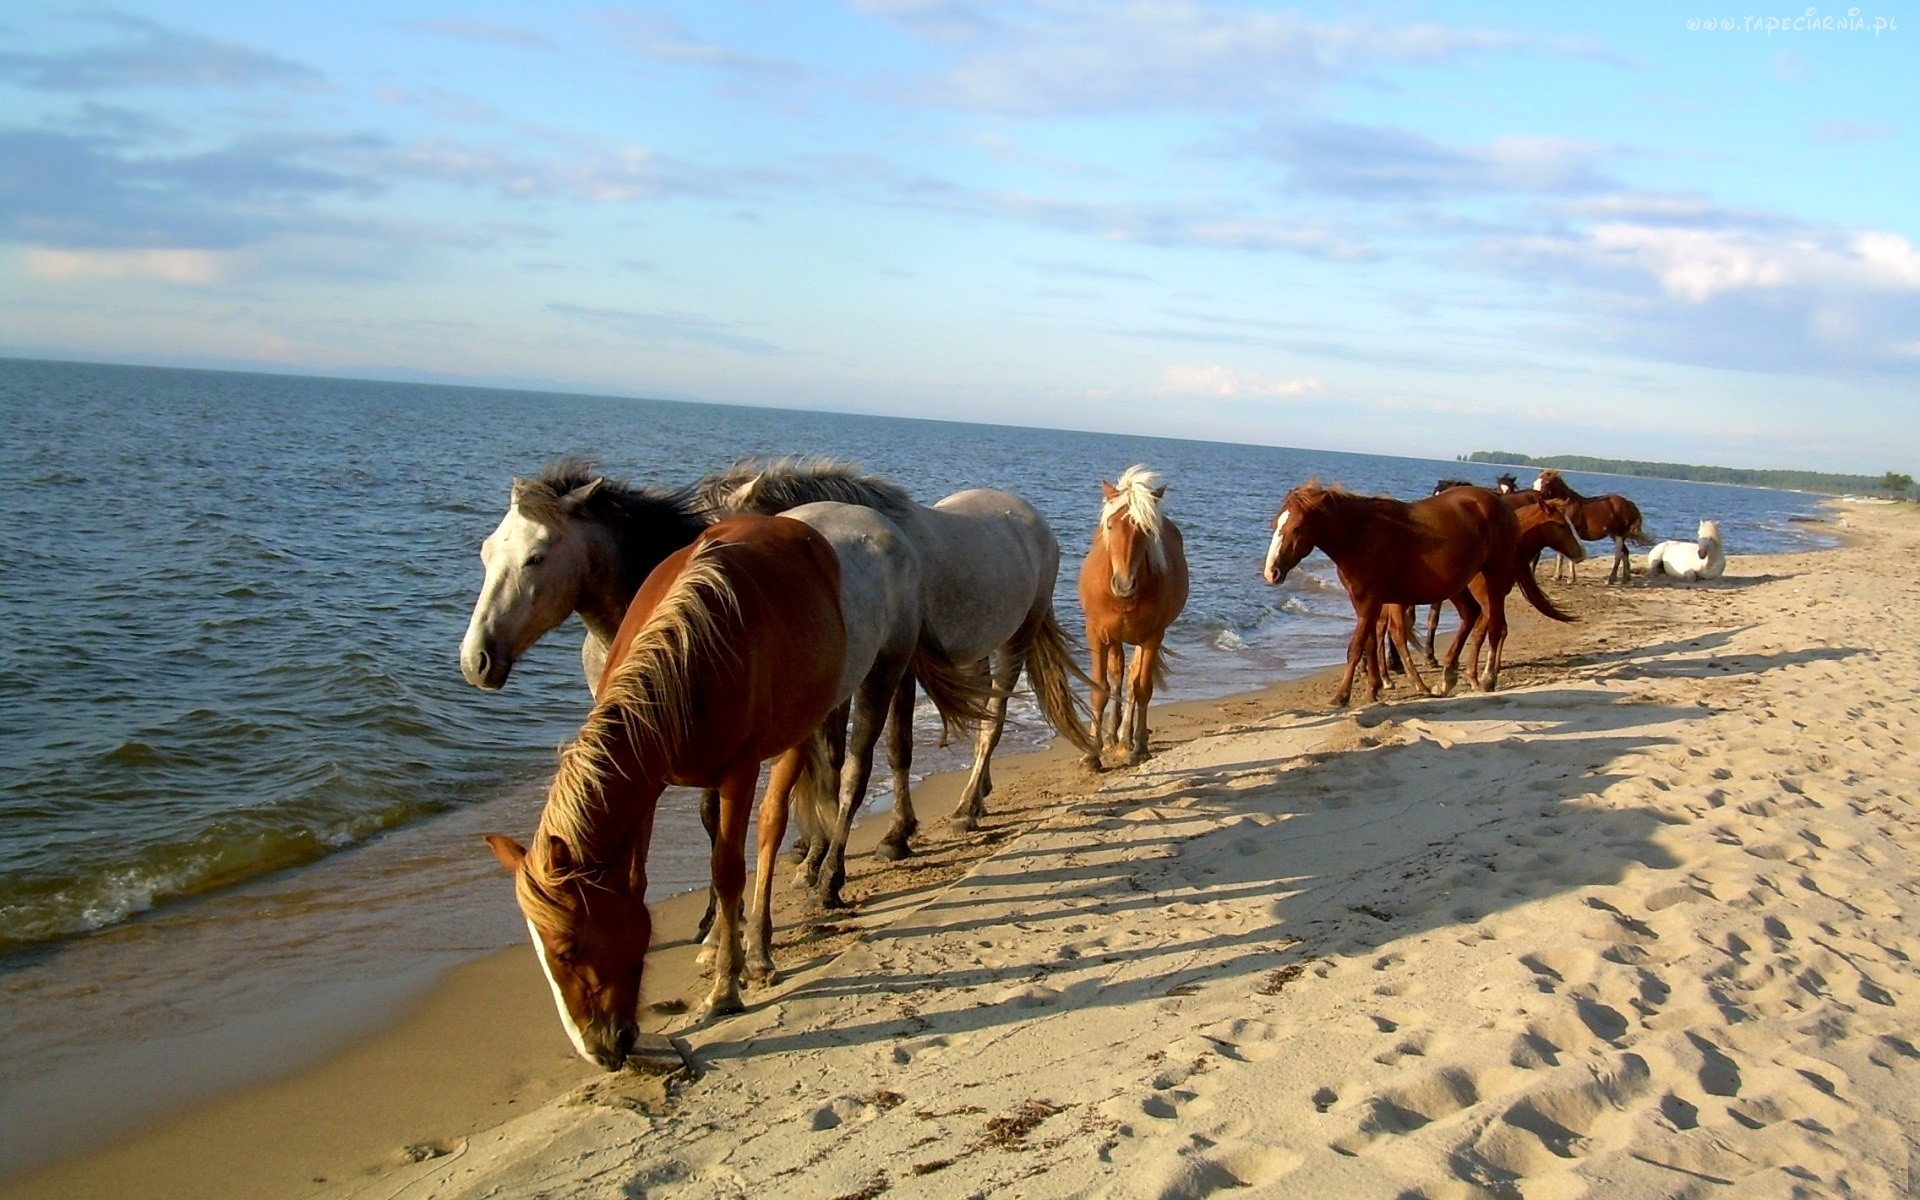 Free Download Fond Ecran Hd Gratuit Chevaux Sur Plage Wallpaper Horses On Beach 1920x1200 For Your Desktop Mobile Tablet Explore 44 Horses On Beach Wallpaper Horse Wallpaper For Computer